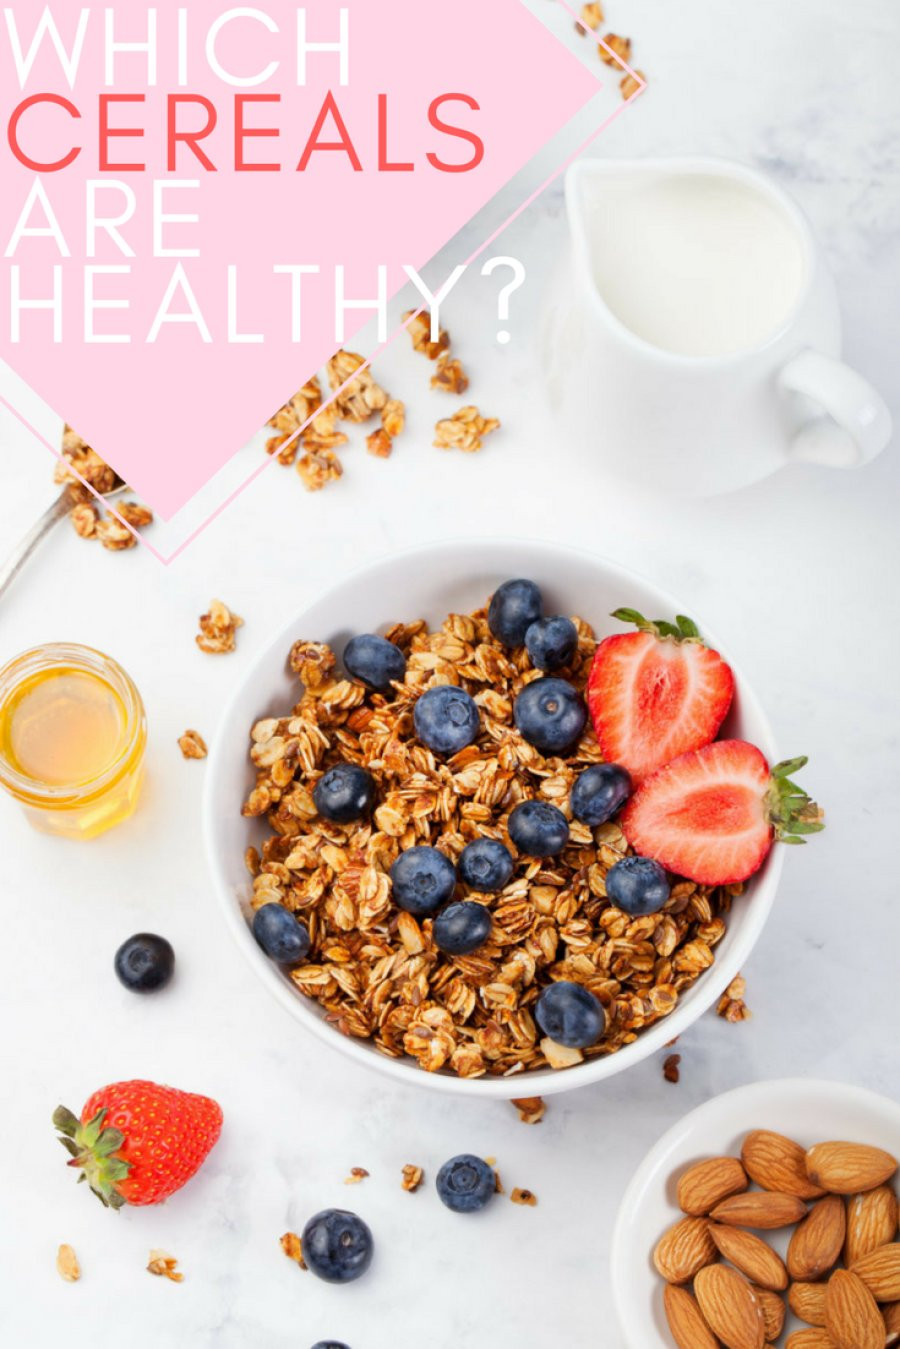 Popular Breakfast Cereals  Here Are The Breakfast Cereals That Are Actually Healthy